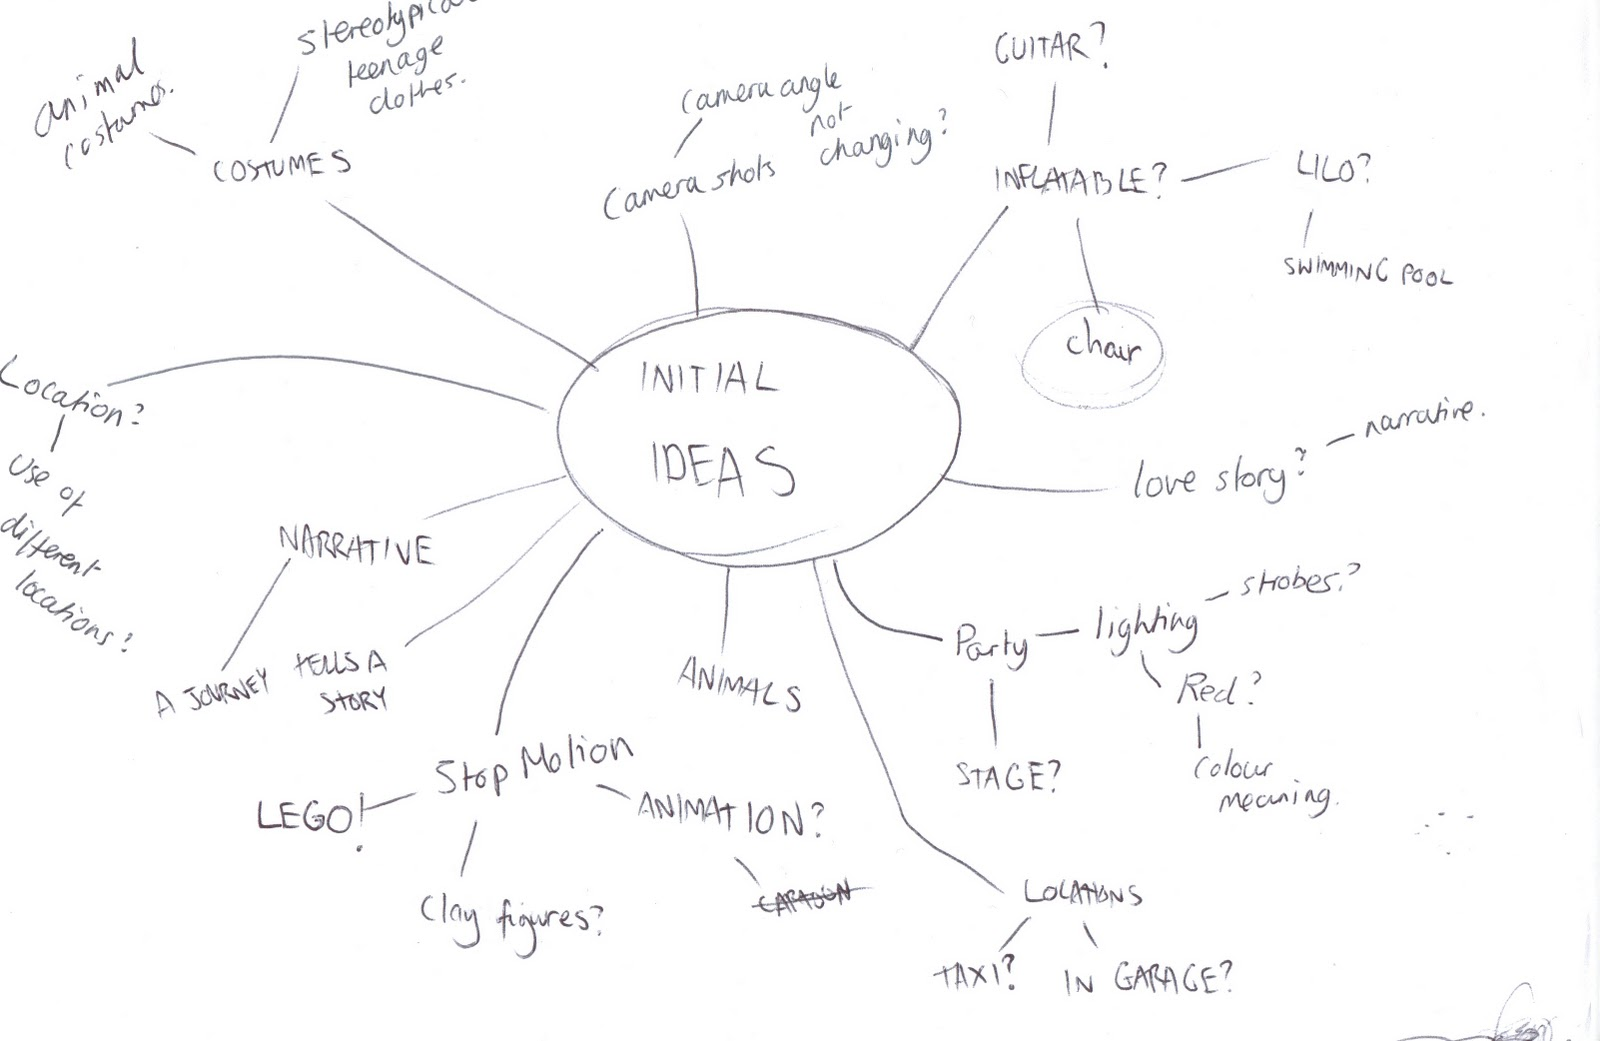 A2 Media - Music Video Project: Ideas mind-map